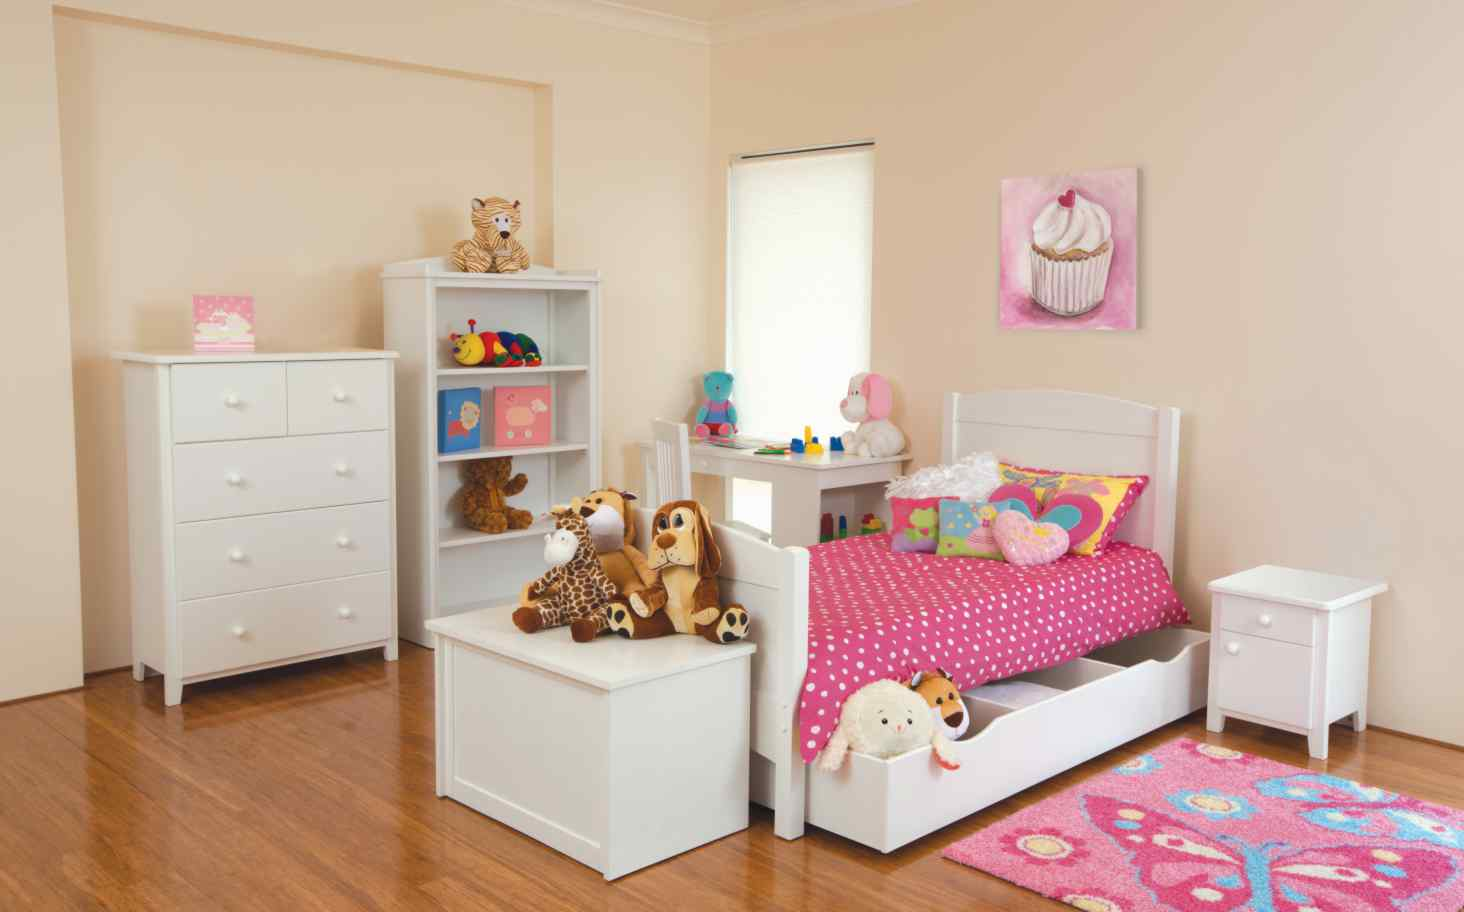 Kids bedroom furniture perth decor ideasdecor ideas - How to decorate a single room ...